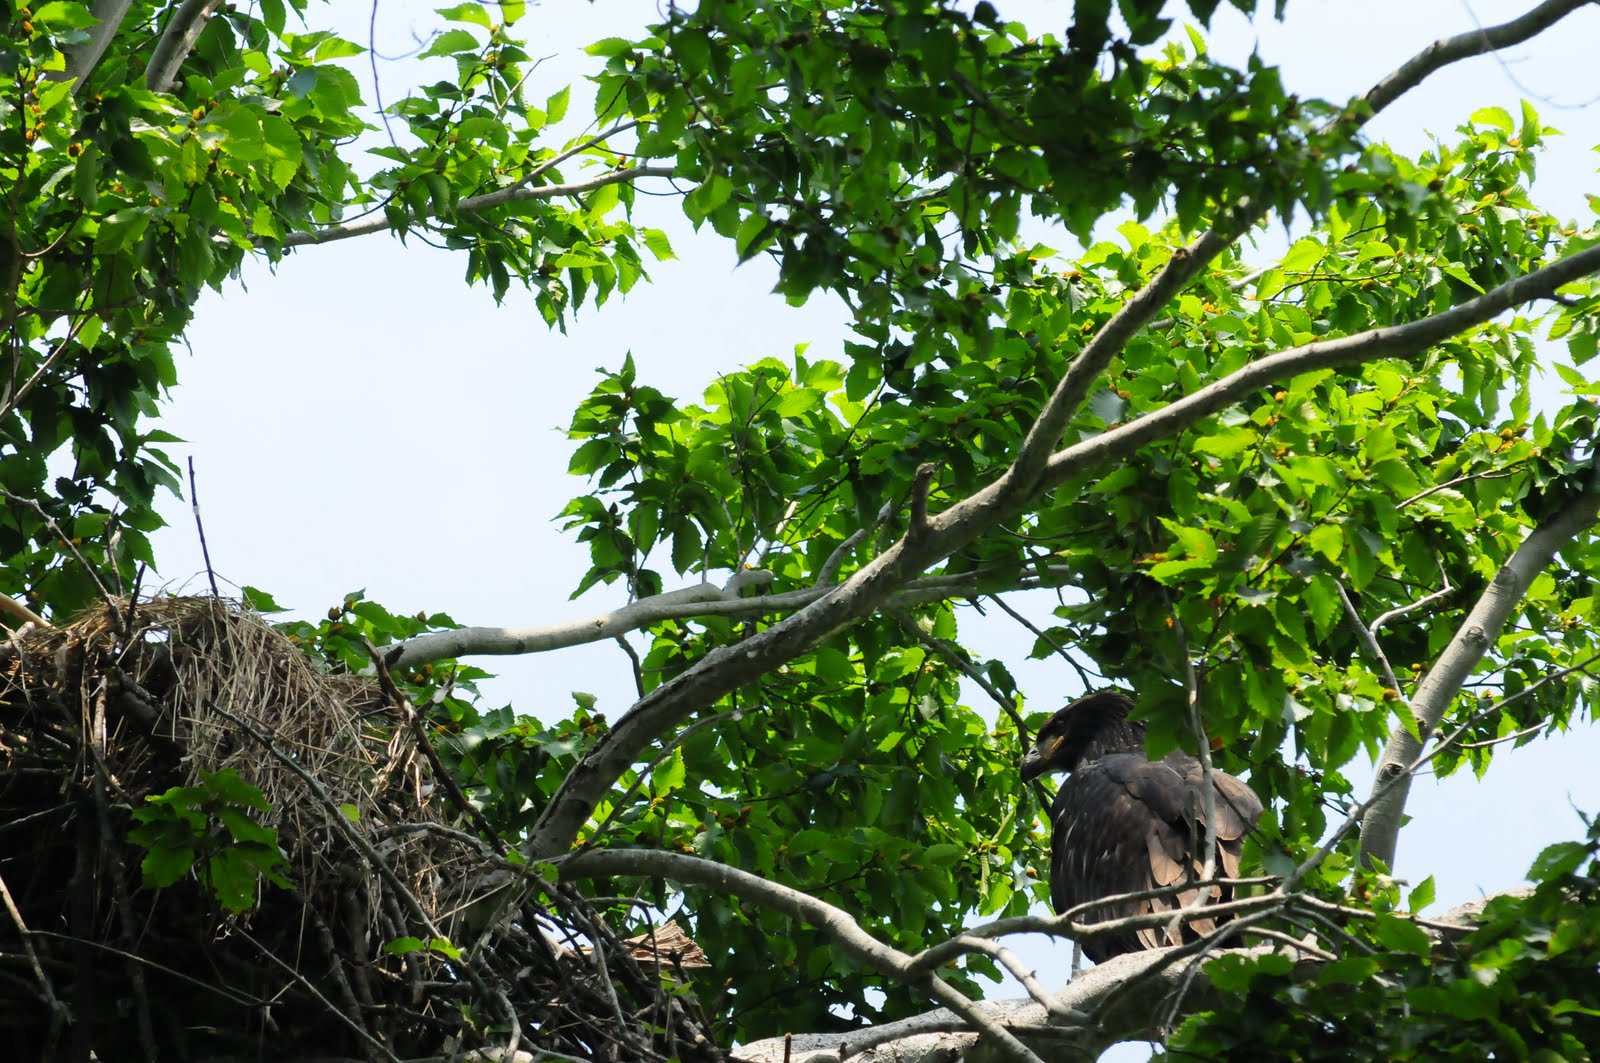 Wildlife photography: Patuxent River Bald Eagles Nest update